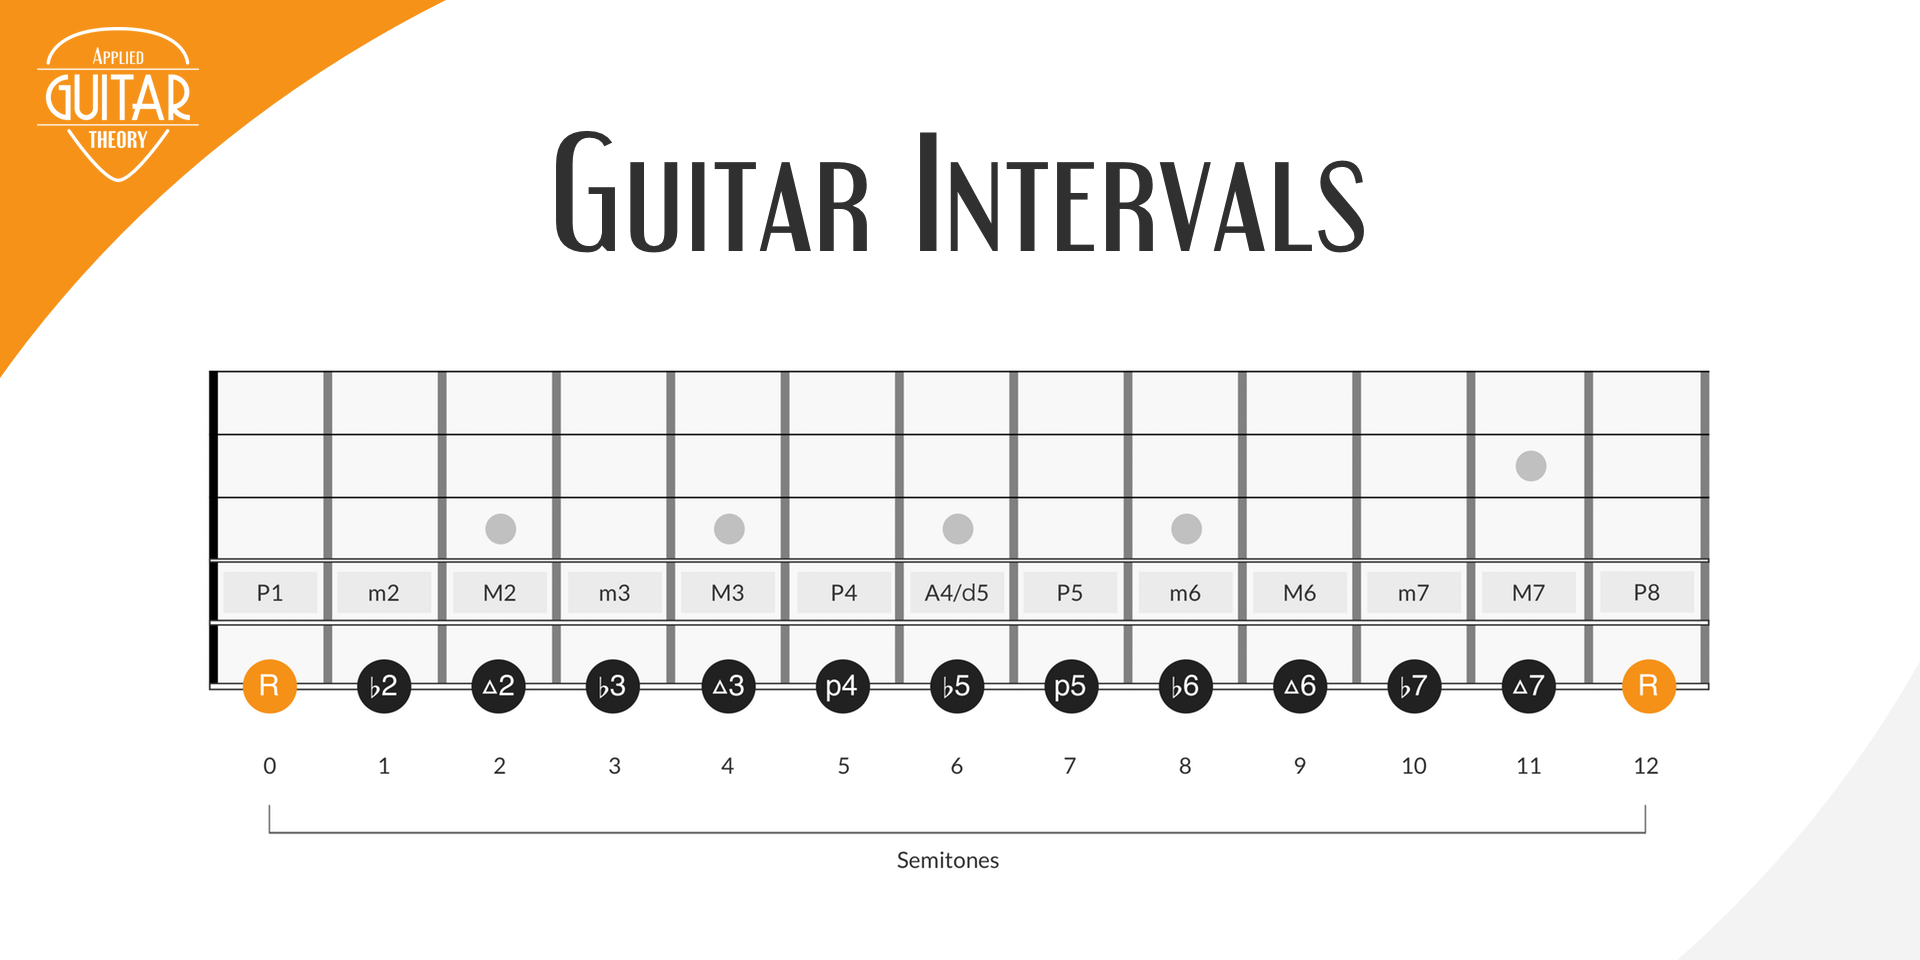 Intervals on guitar featured image